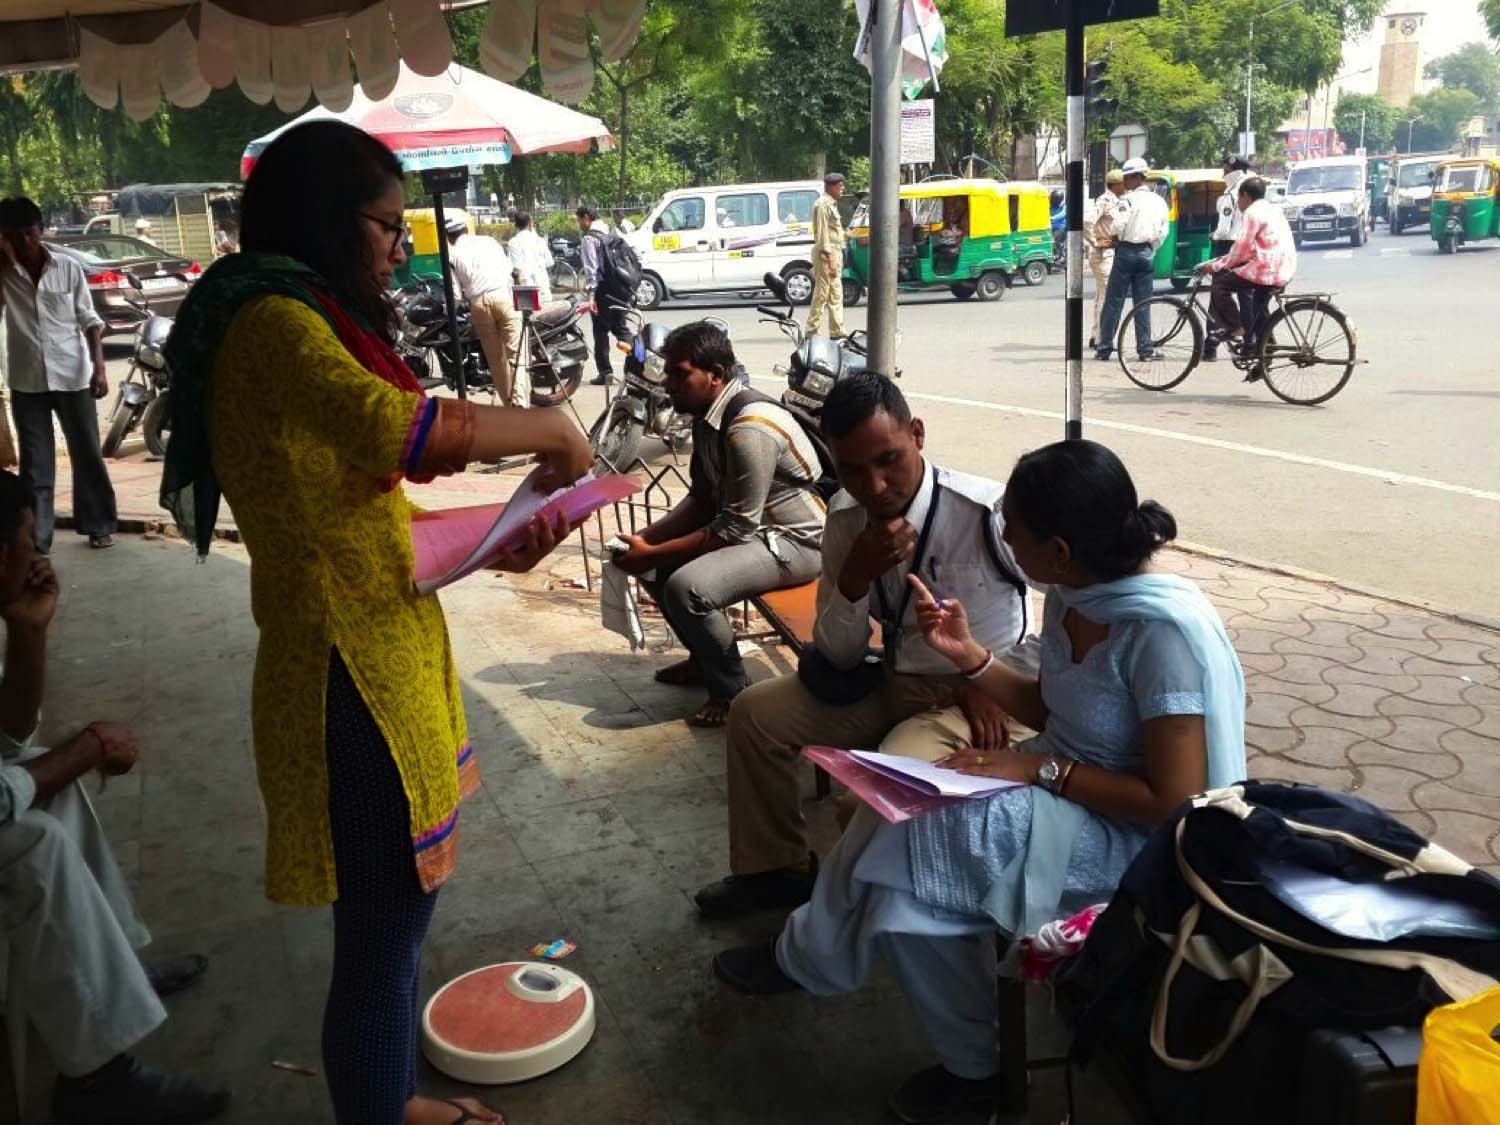 Amee Raval  (GHE '16) (left) and Dr. Priya Dutta, from Indian Institute of Public Health, (right) were administering a baseline questionnaire to a study participant at Lal Darwaza Traffic Junction in Ahmedabad, India.